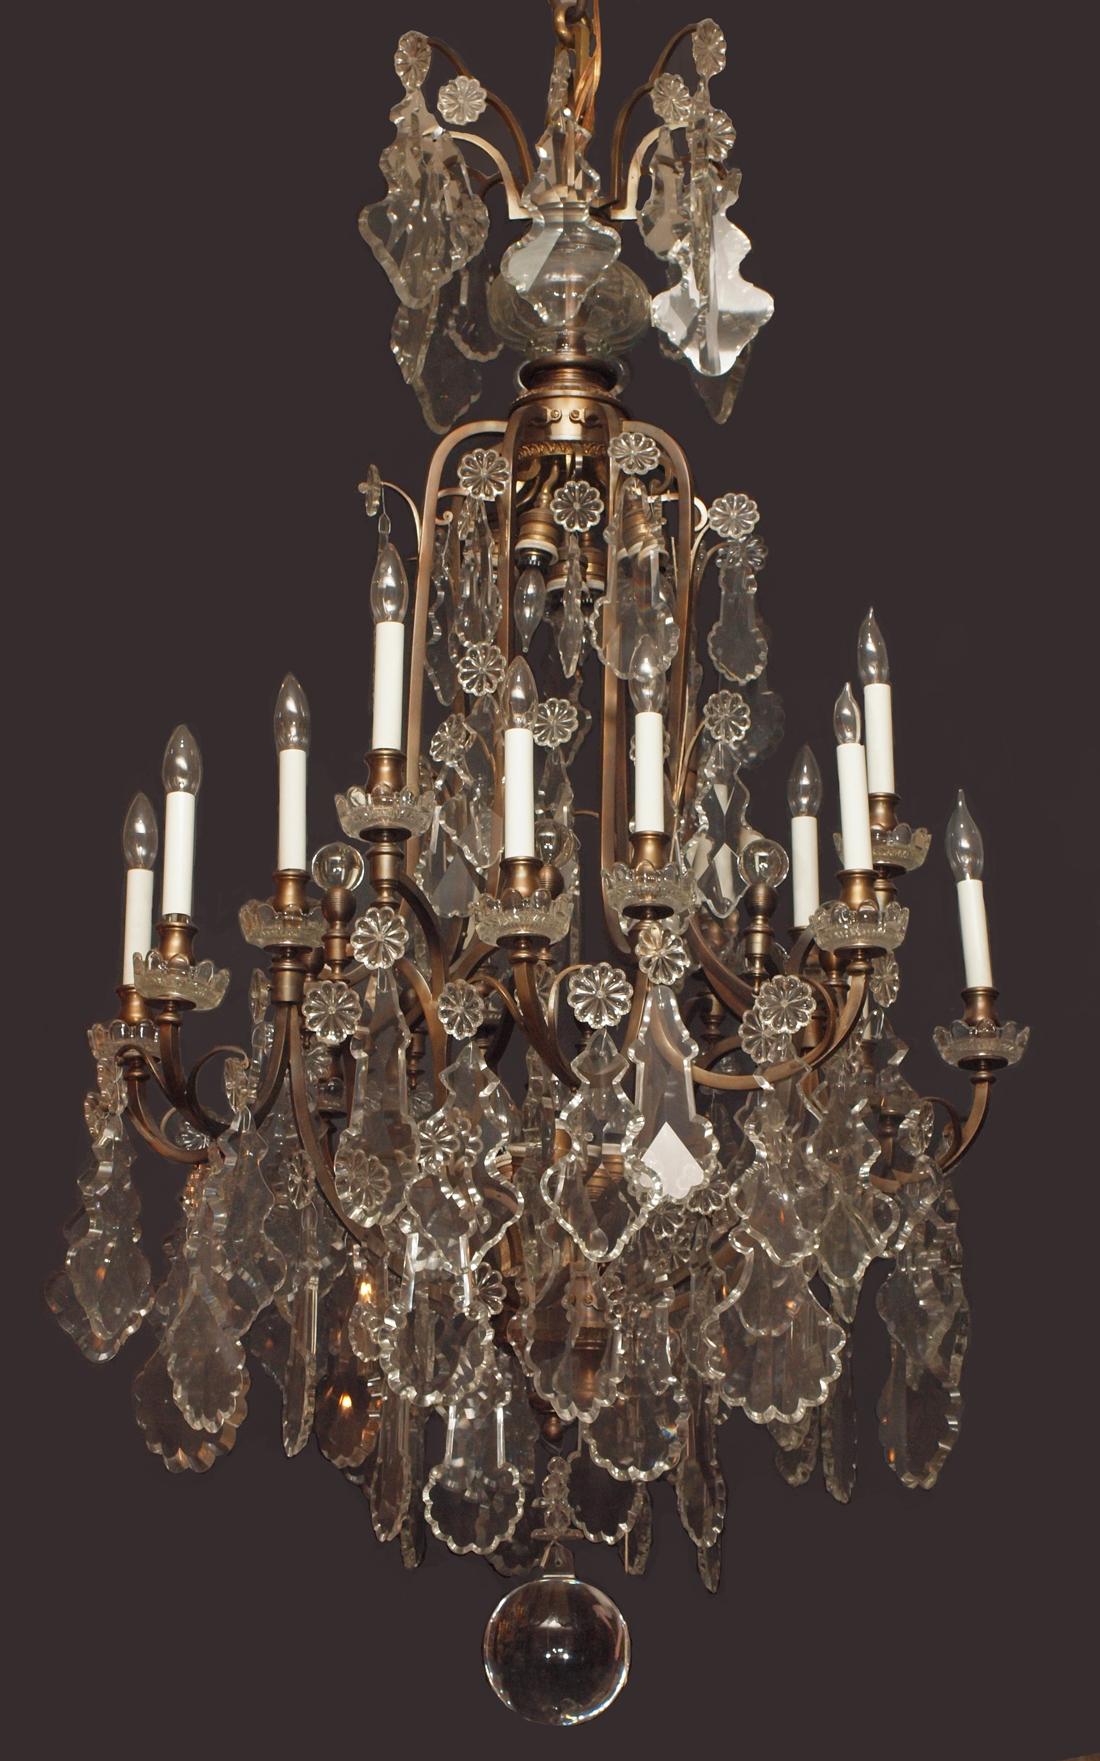 15 antique french chandeliers chandelier ideas chandeliers antiques chandeliers and french with antique french chandeliers image 9 of 15 aloadofball Choice Image